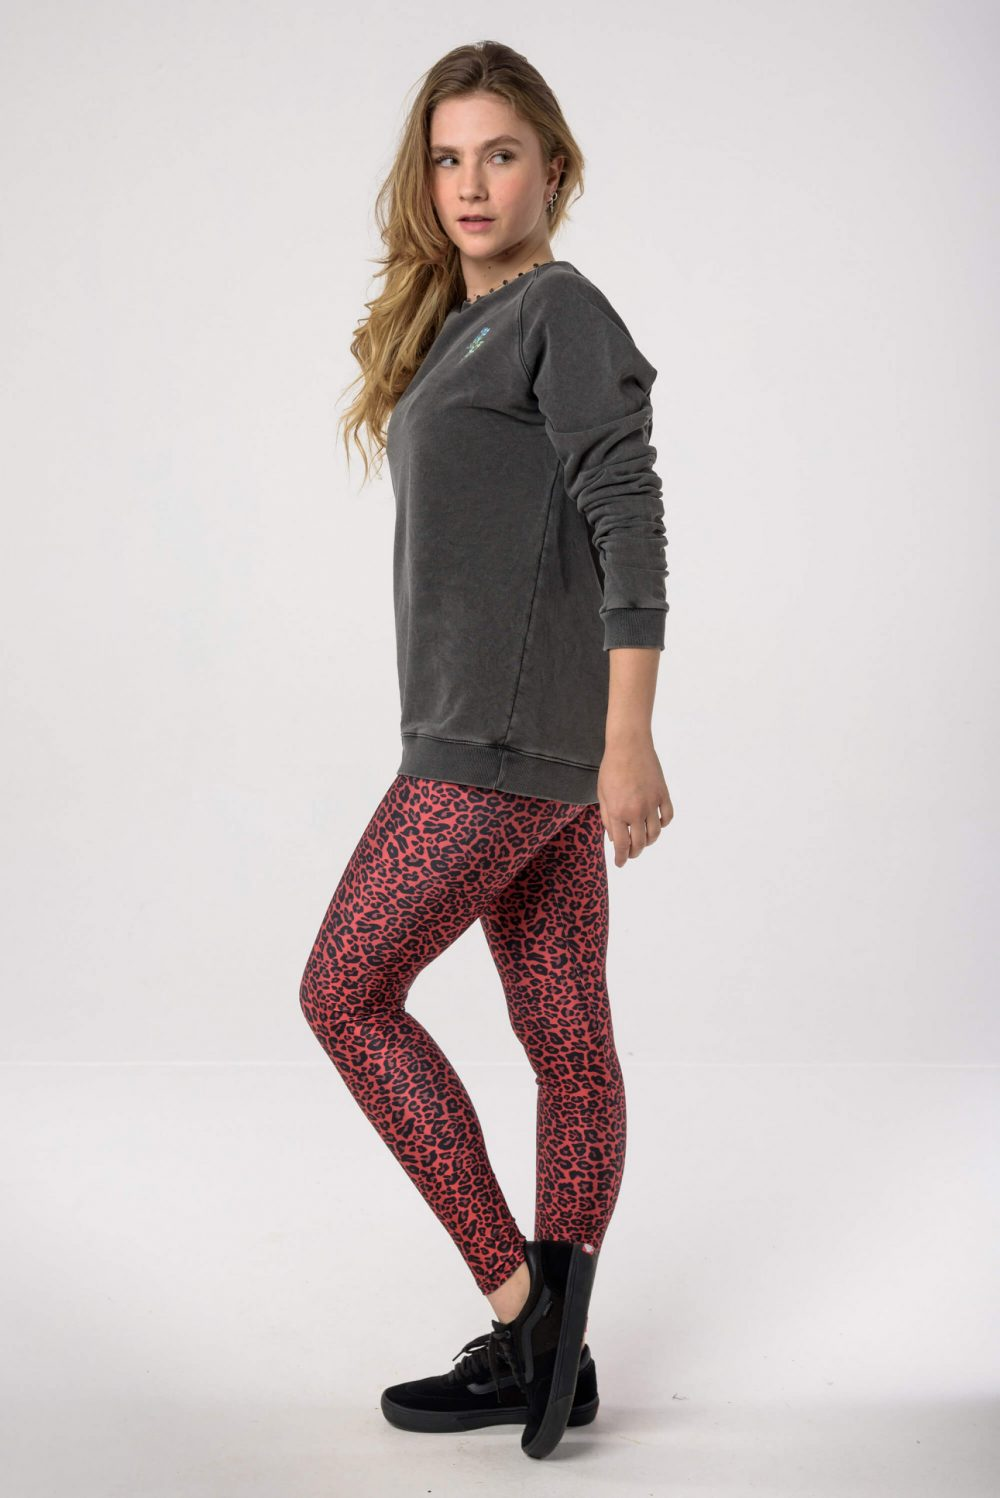 Heartbeatink The Animal Series Leggings / Endalaus Thunder sweatshirt